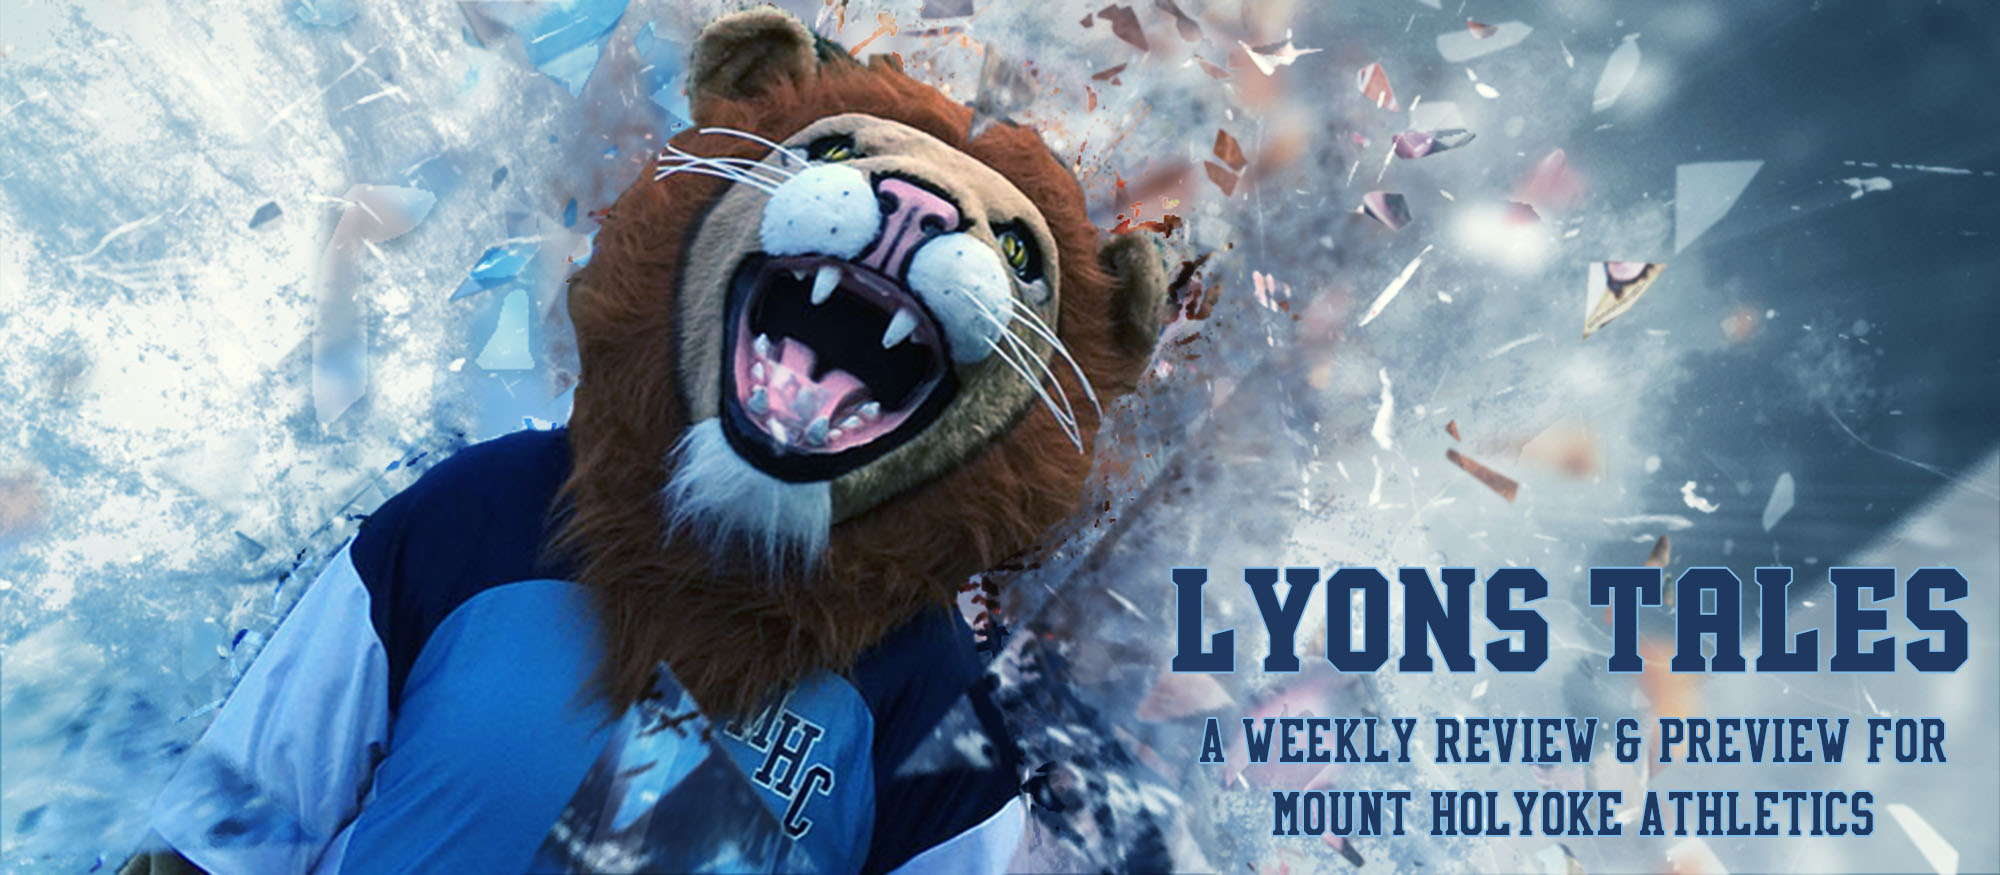 Preview photo for the Athletics Weekly Newsletter, the Lyons Tales.